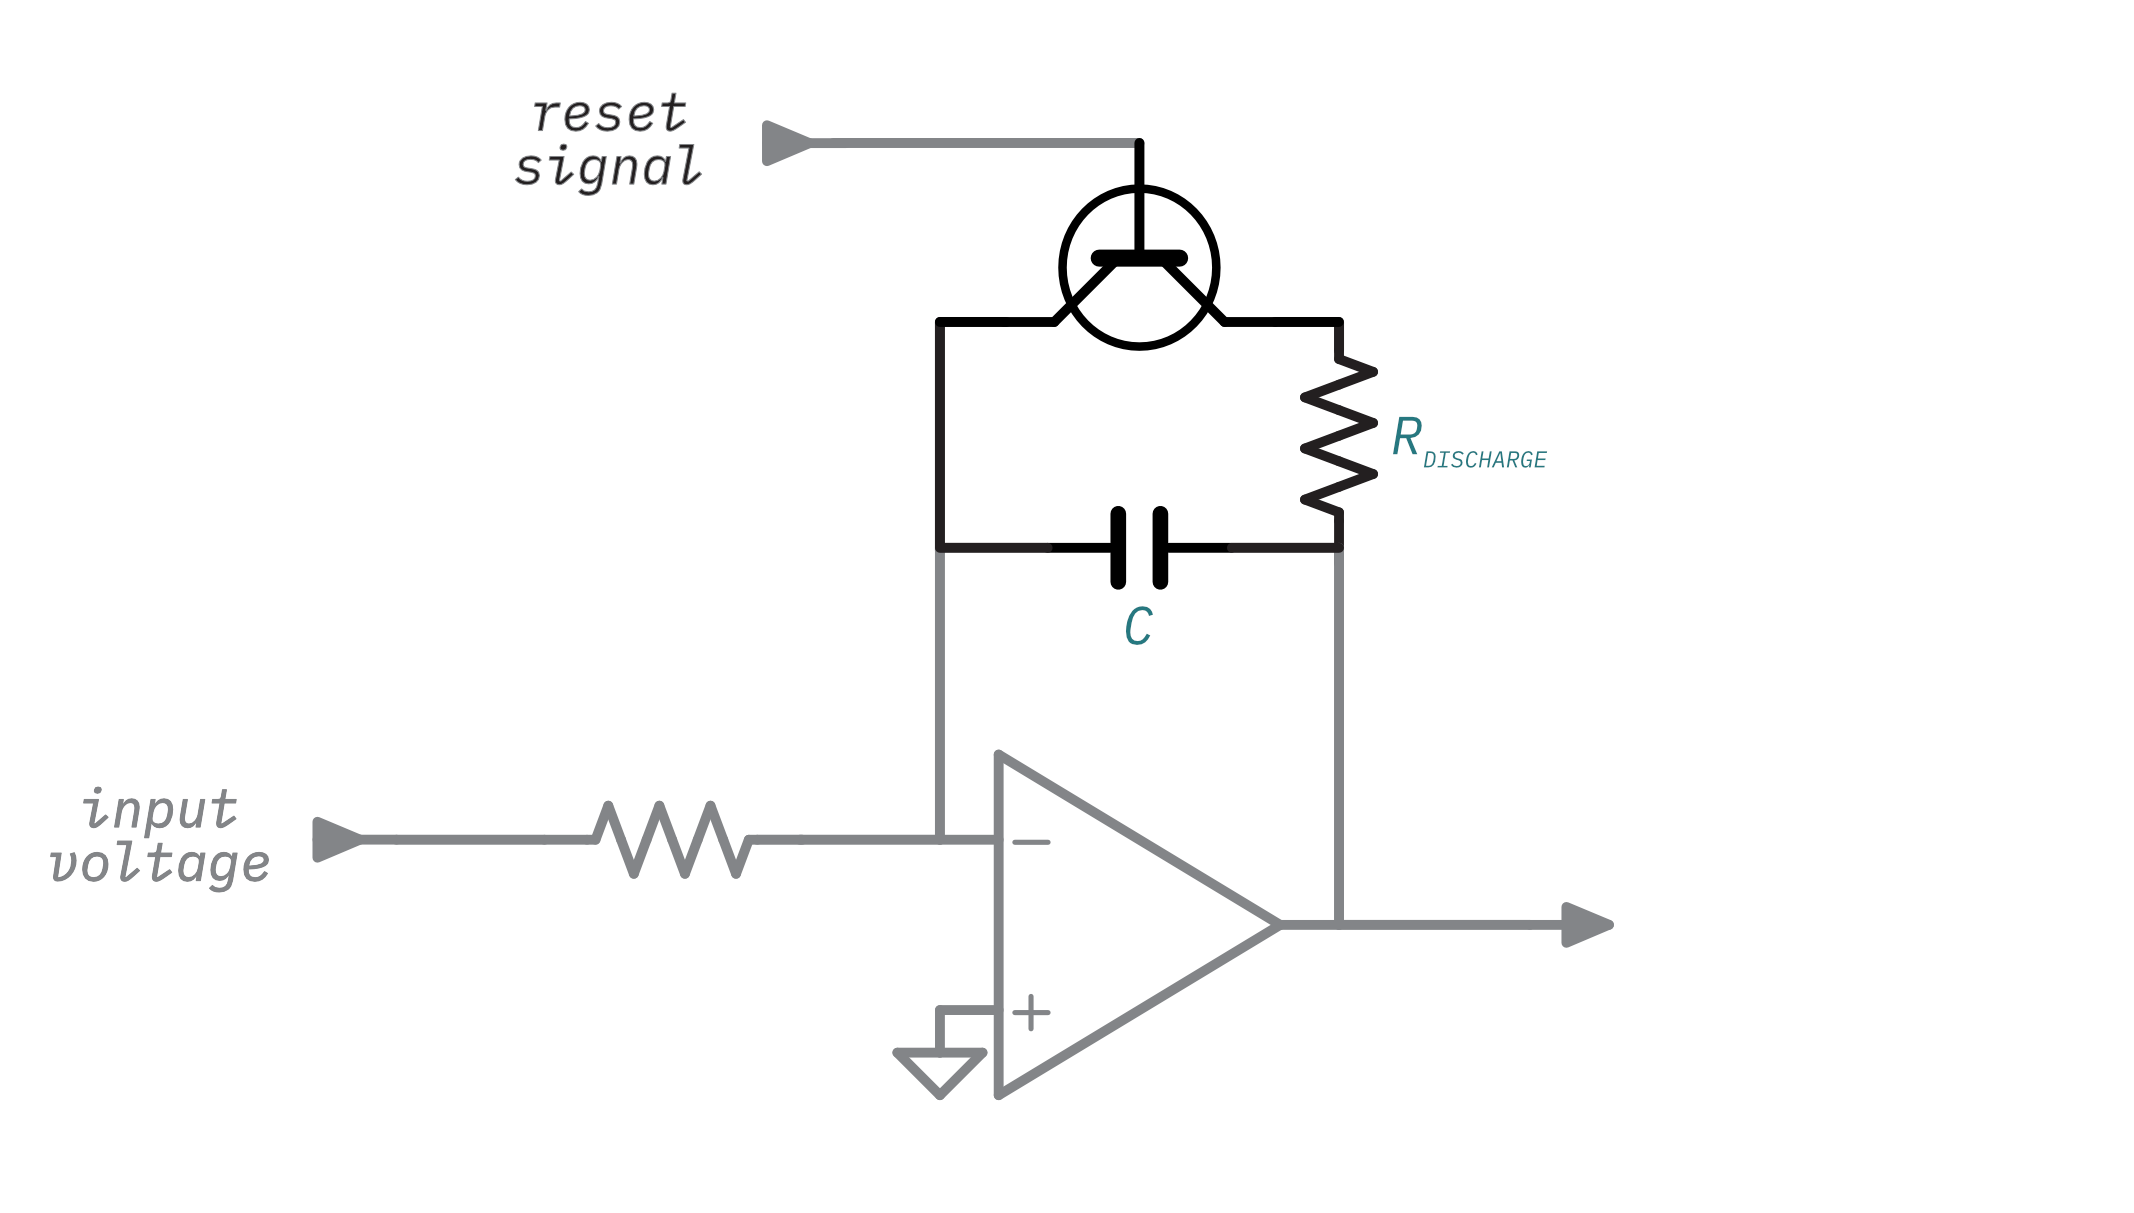 Illustration highlighting the discharge circuit